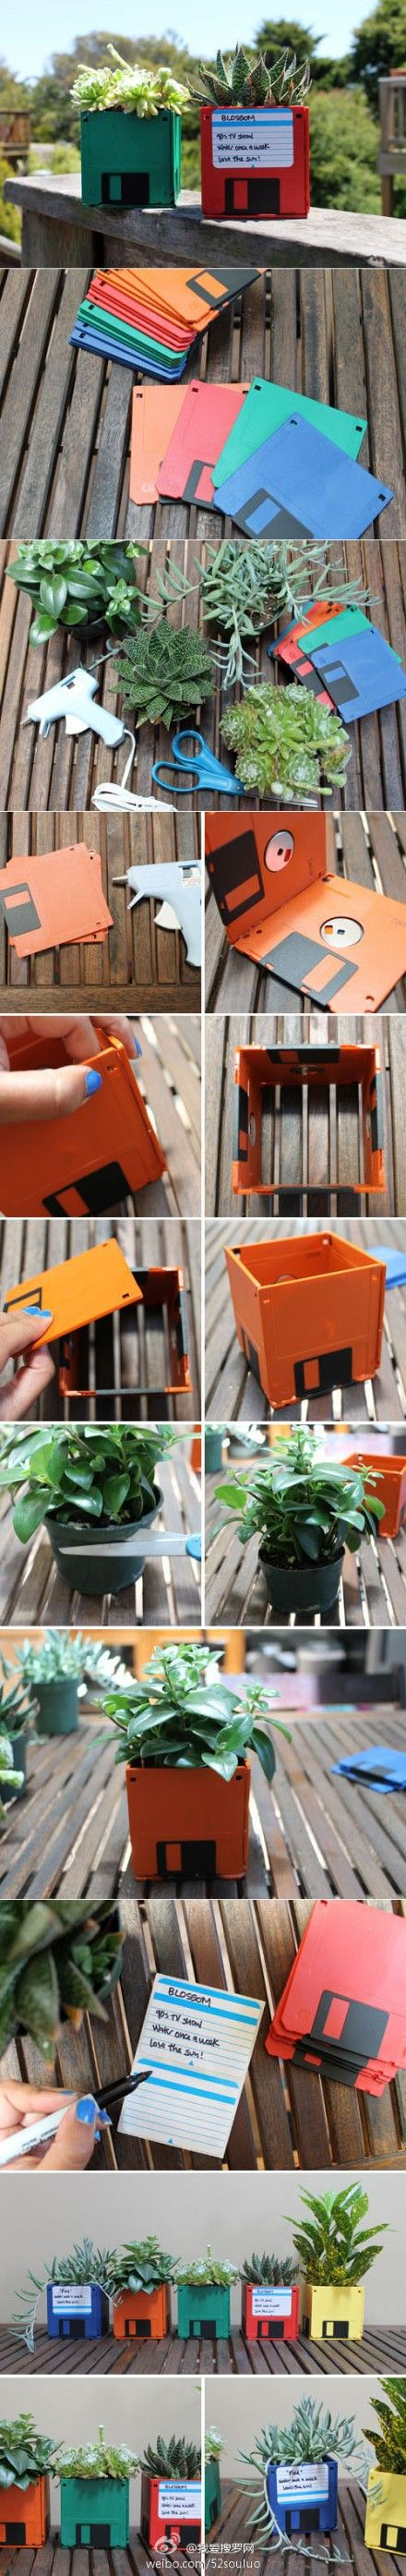 DIY Floppy Disk Planter: